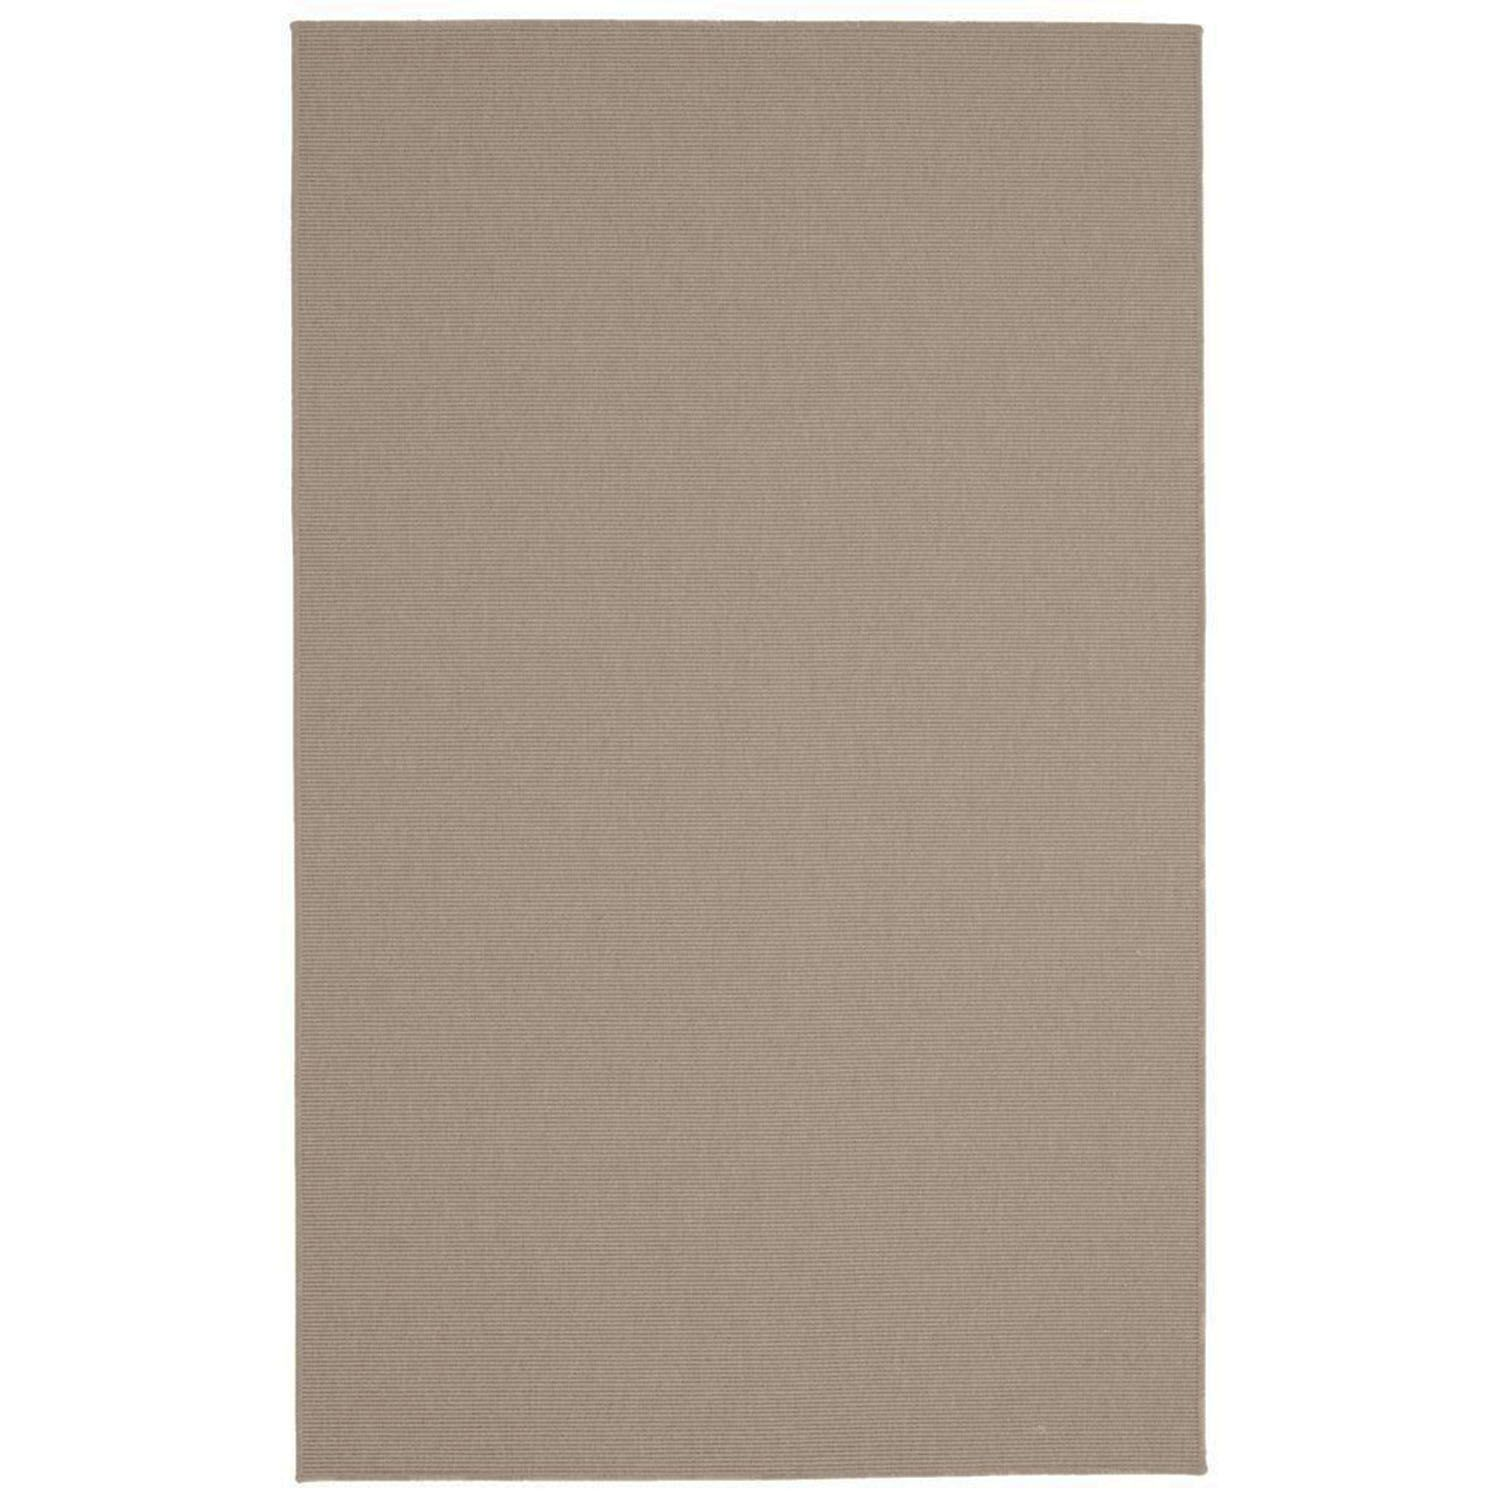 Paquerette Brown Area Rug Rug Size: 9' x 12'